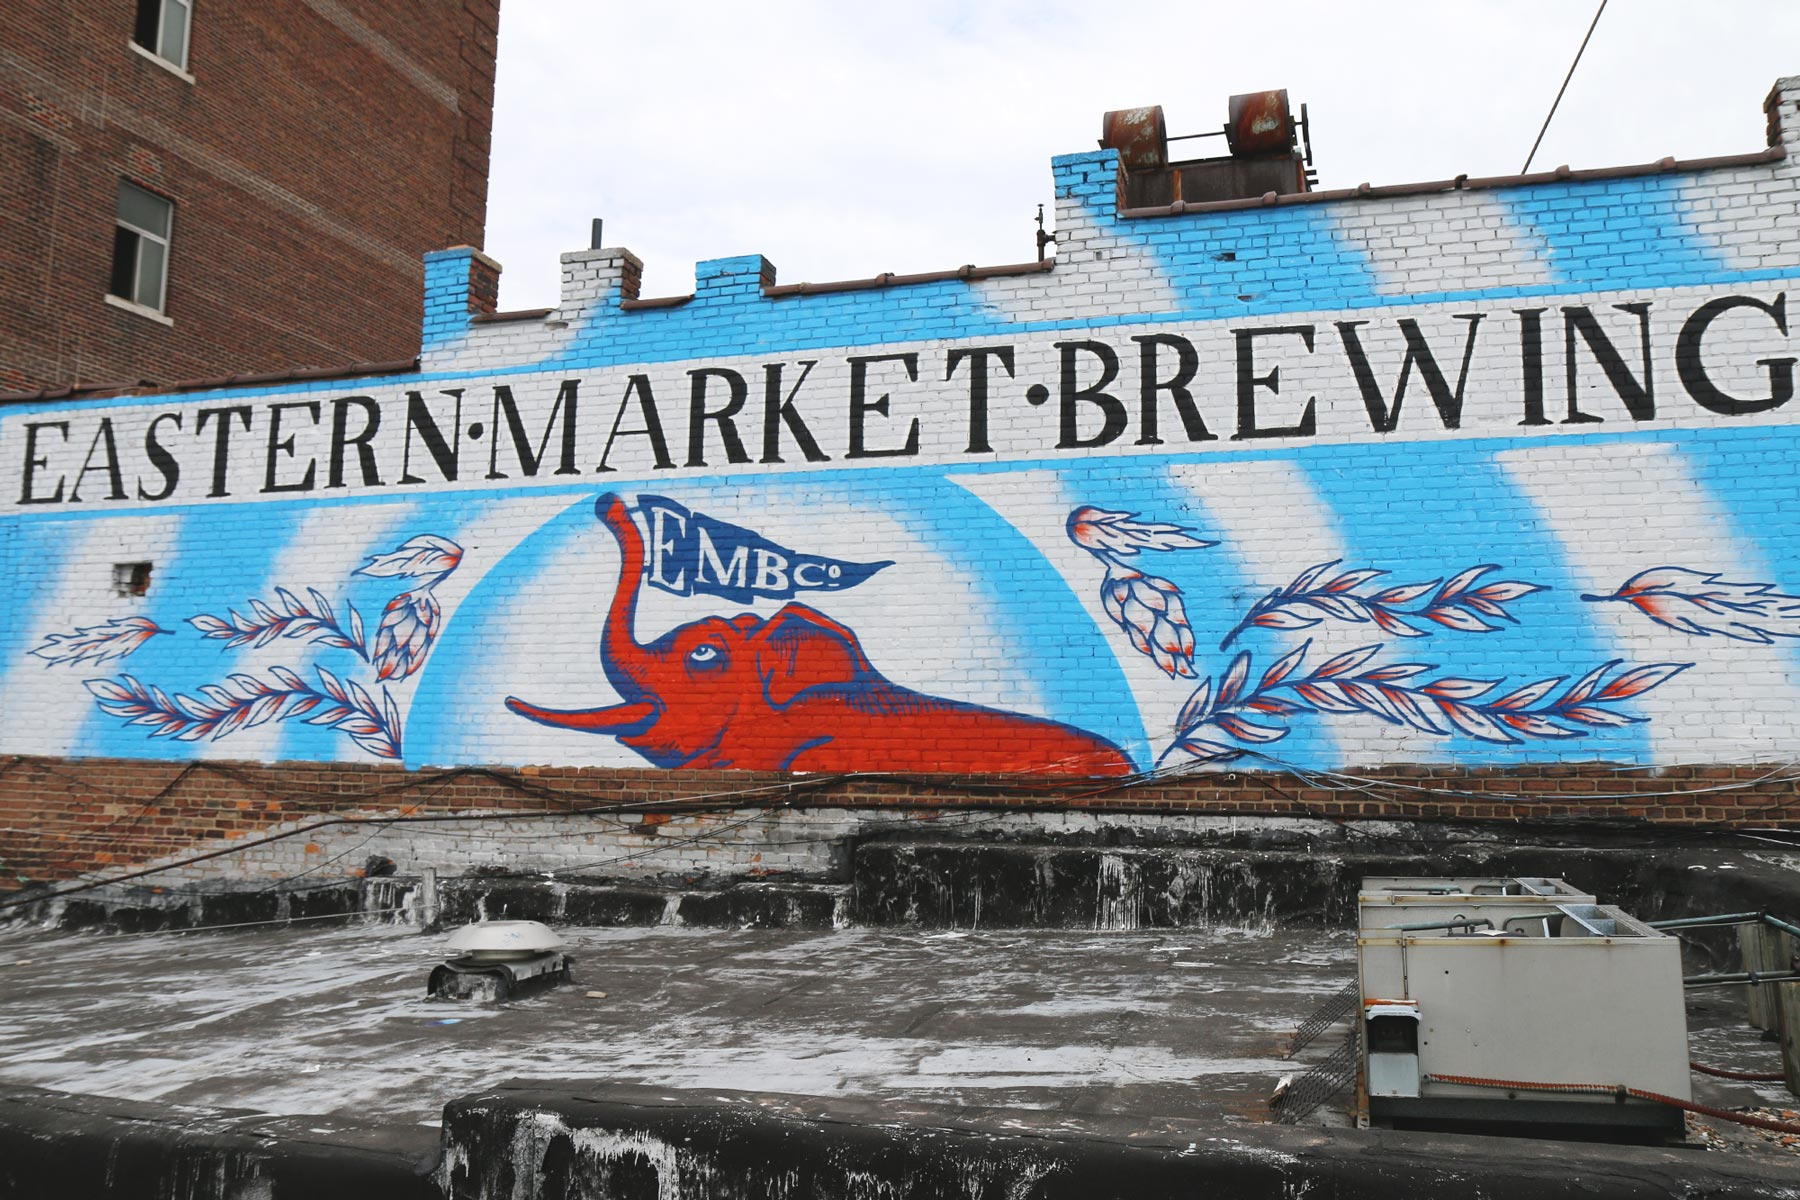 The Elephant in the Room: Detroit's Eastern Market Brewing Co.